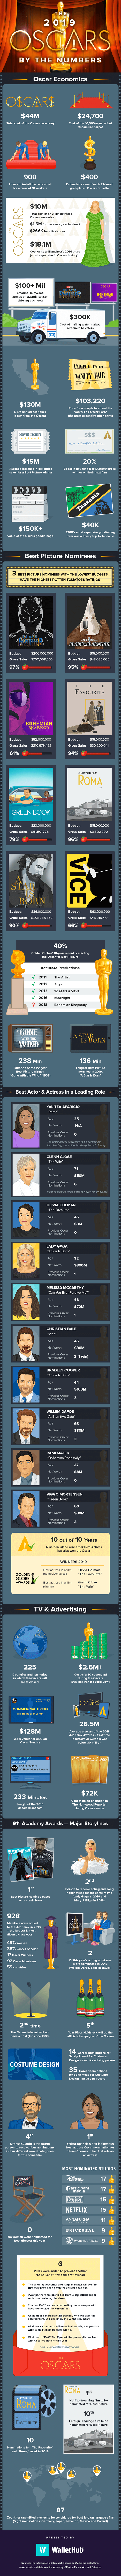 Oscar-by-the-numbers-2019